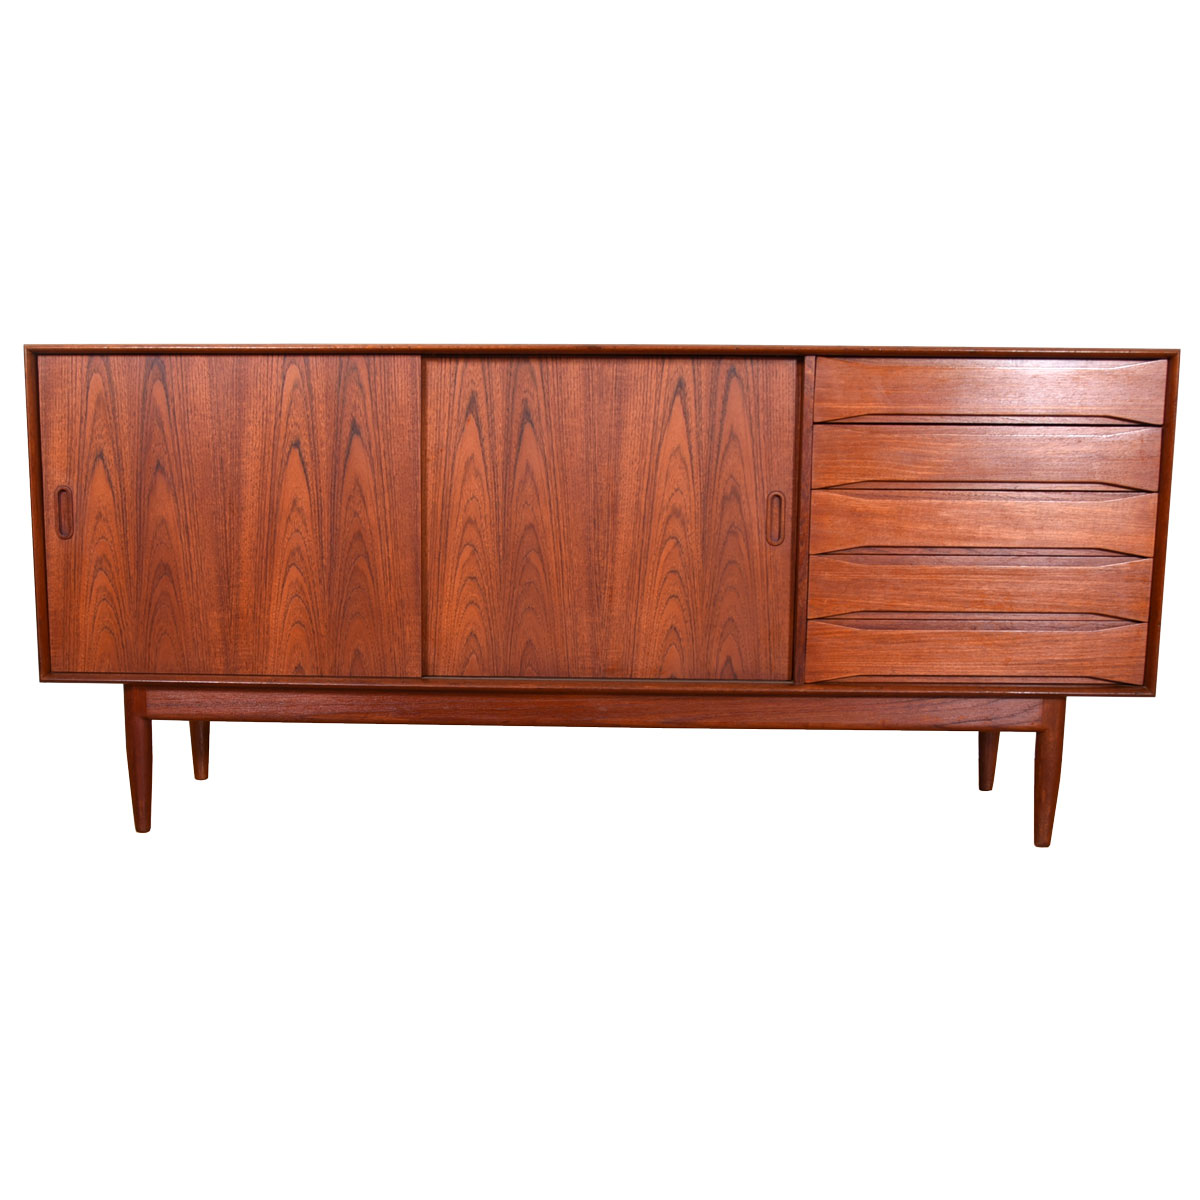 Danish Modern Credenza by Johannes Aasbjerg with Sliding Doors in Solid Teak